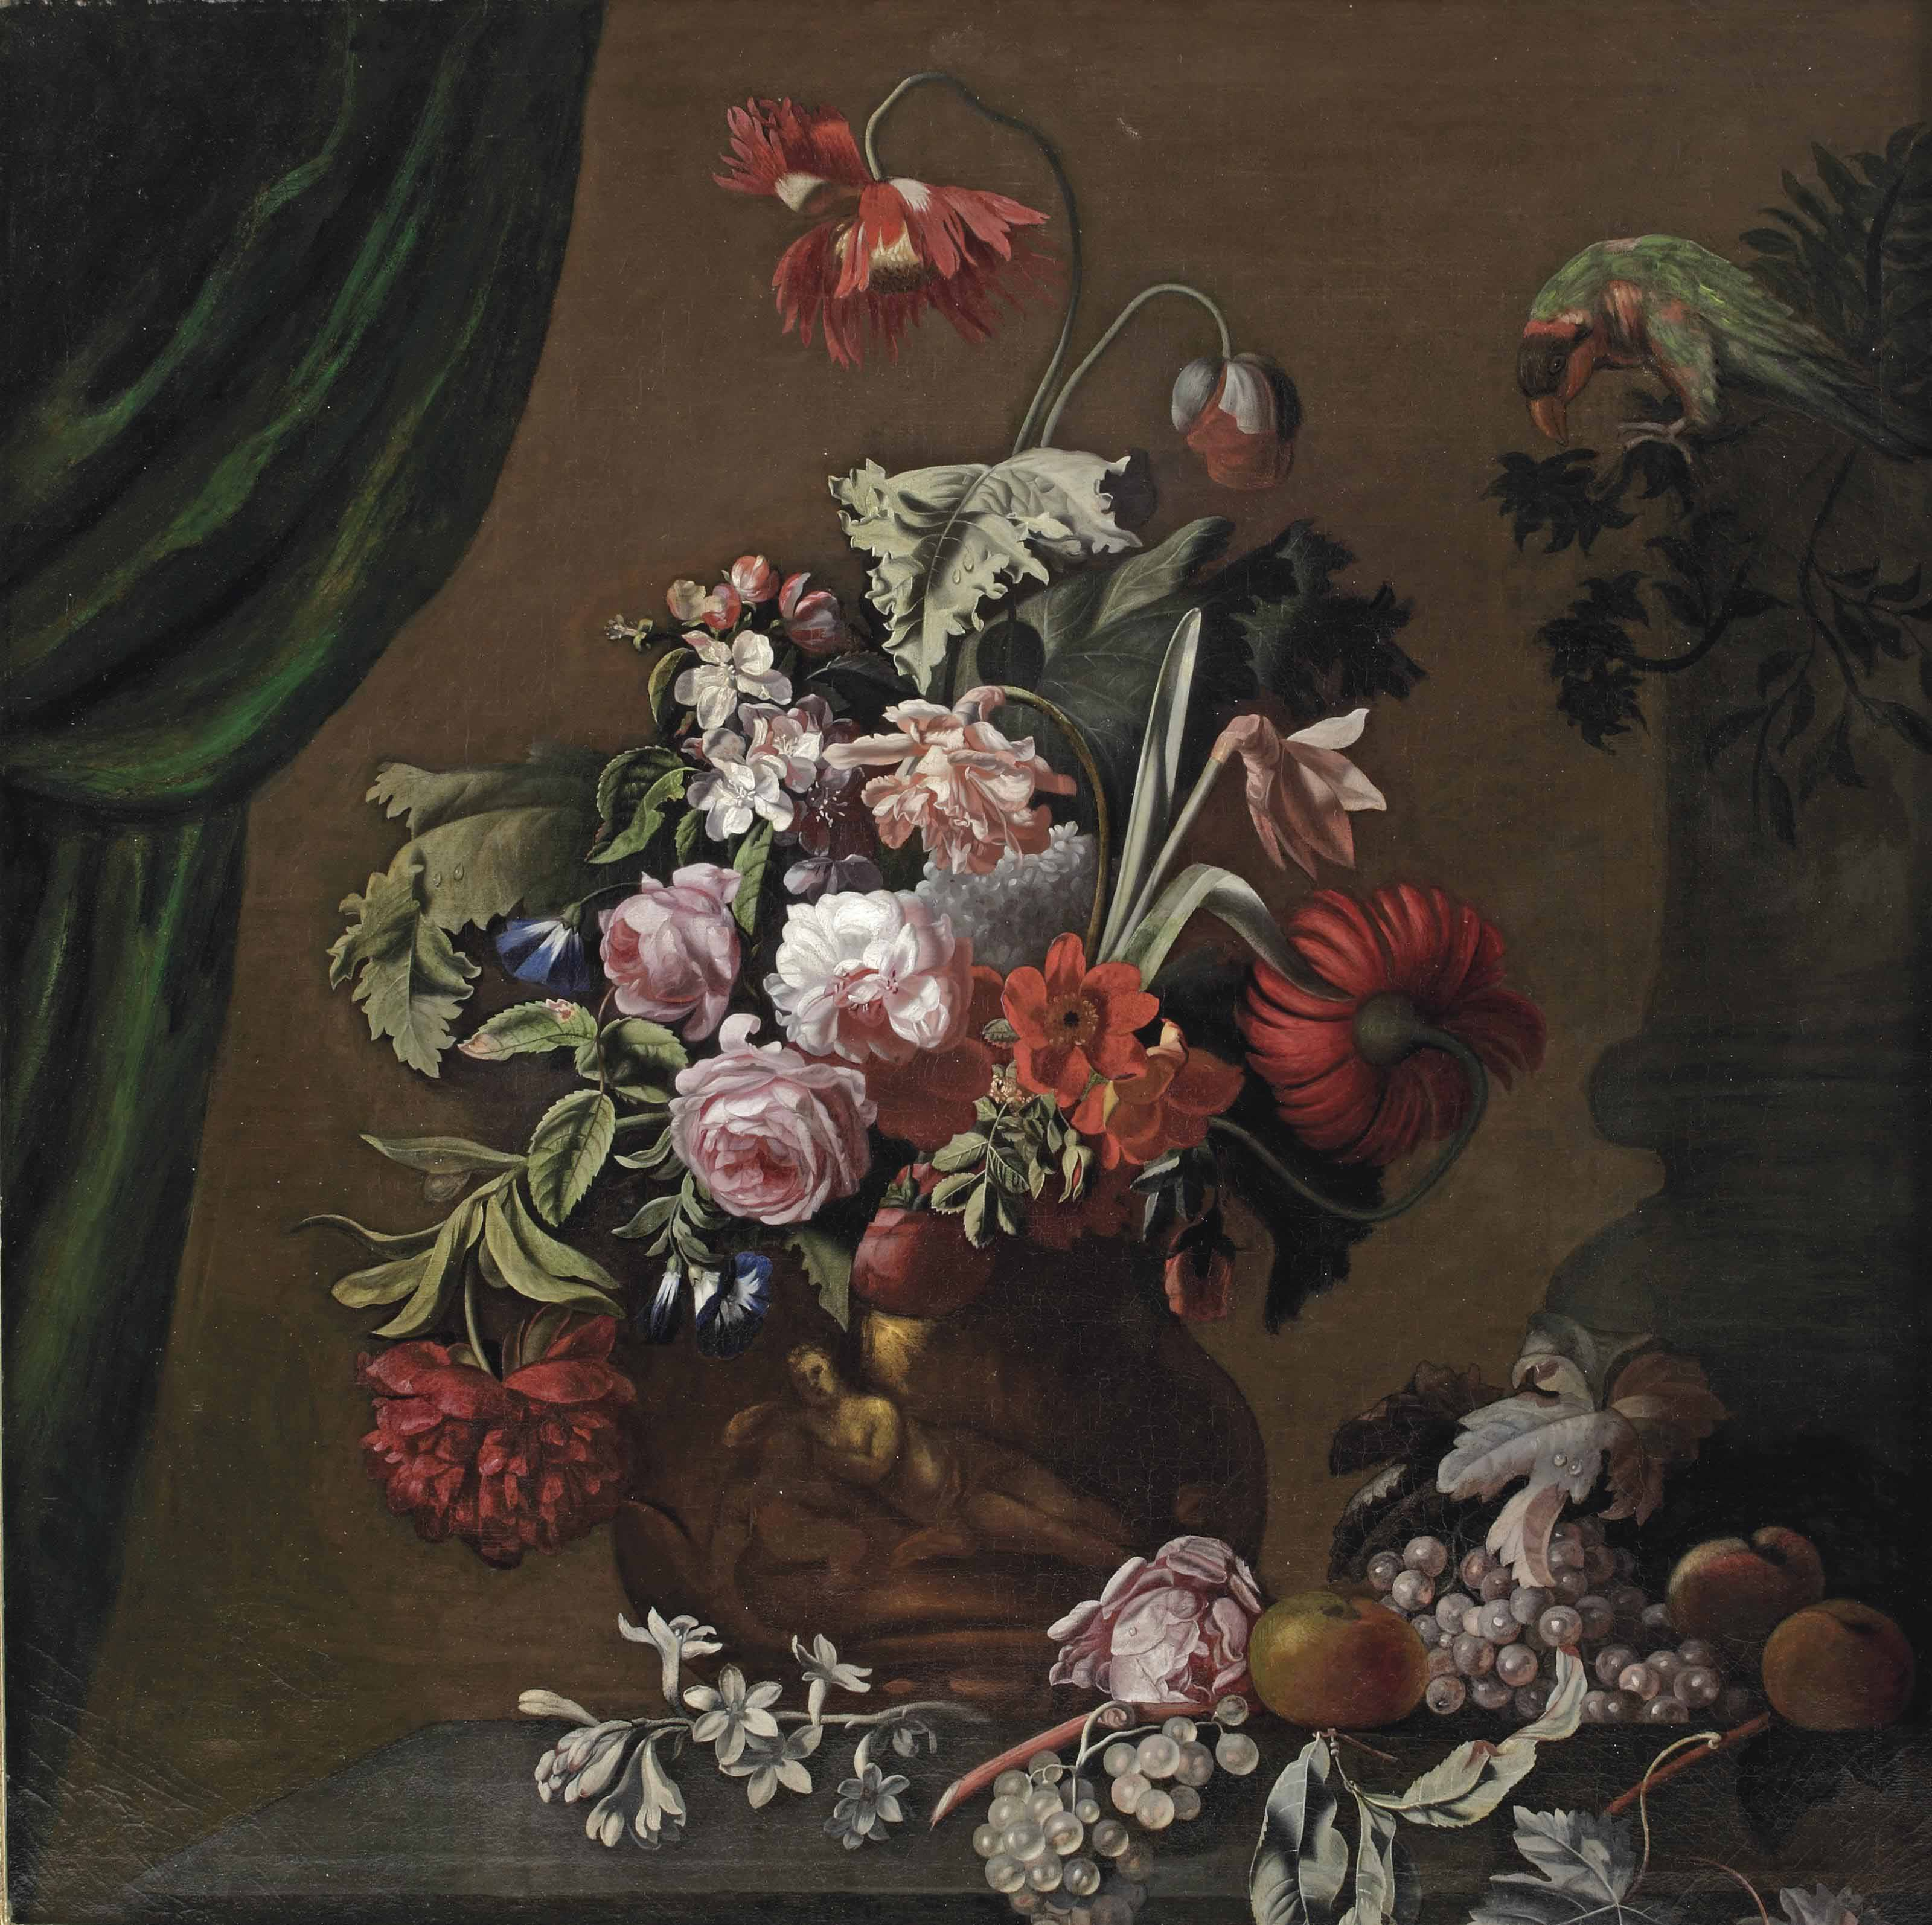 Roses, poppies and carnations in a terracotta vase, with a parrot, apples and grapes on a stone ledge, a curtain to the left